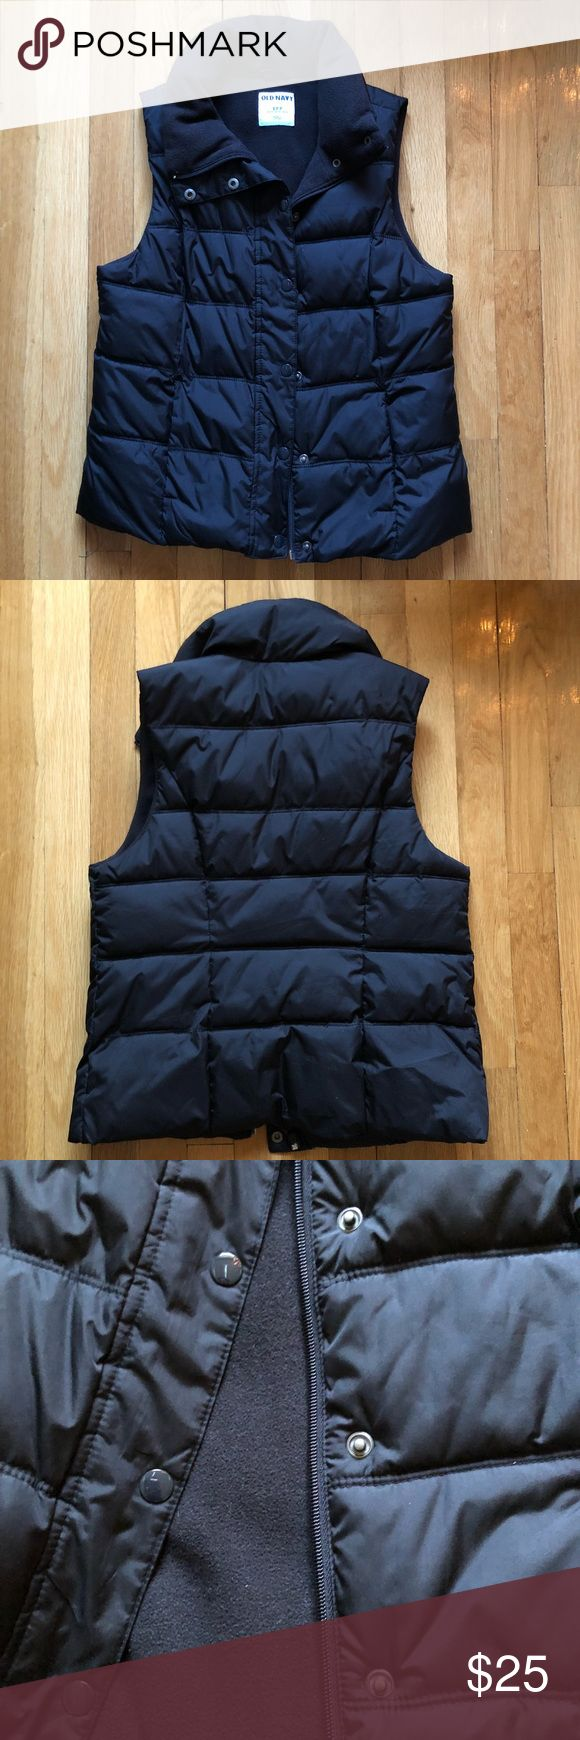 🆕 Old Navy Black Puffer Vest (women's) O ld Navy Black Puffer Vest (women's). Size S (small). Plush, warm fleece lining. Perfect for fall or winter. Smoke/pet free home. Make an offer, no trades. Old Navy Jackets & Coats Vests